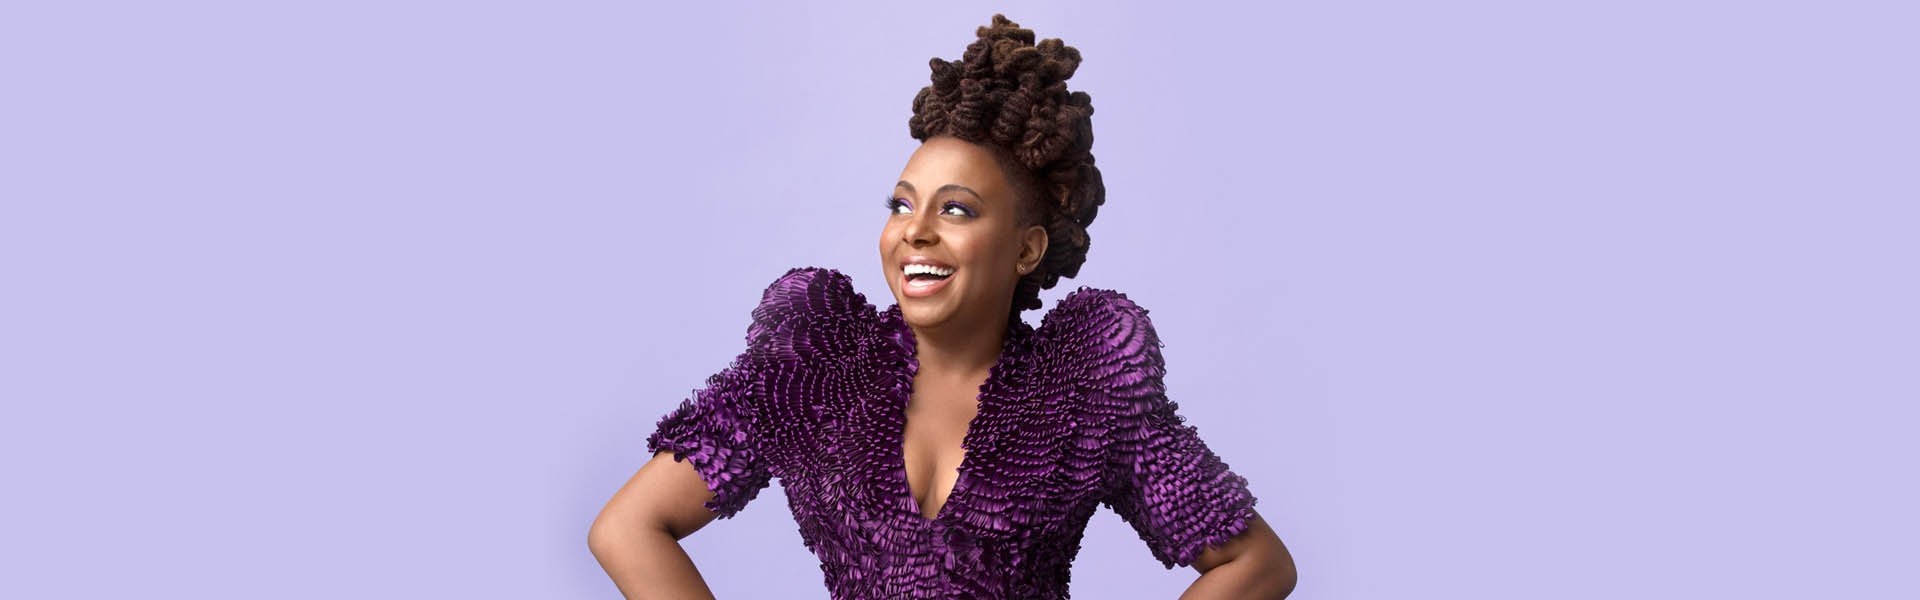 ledisi-slider-purple-1